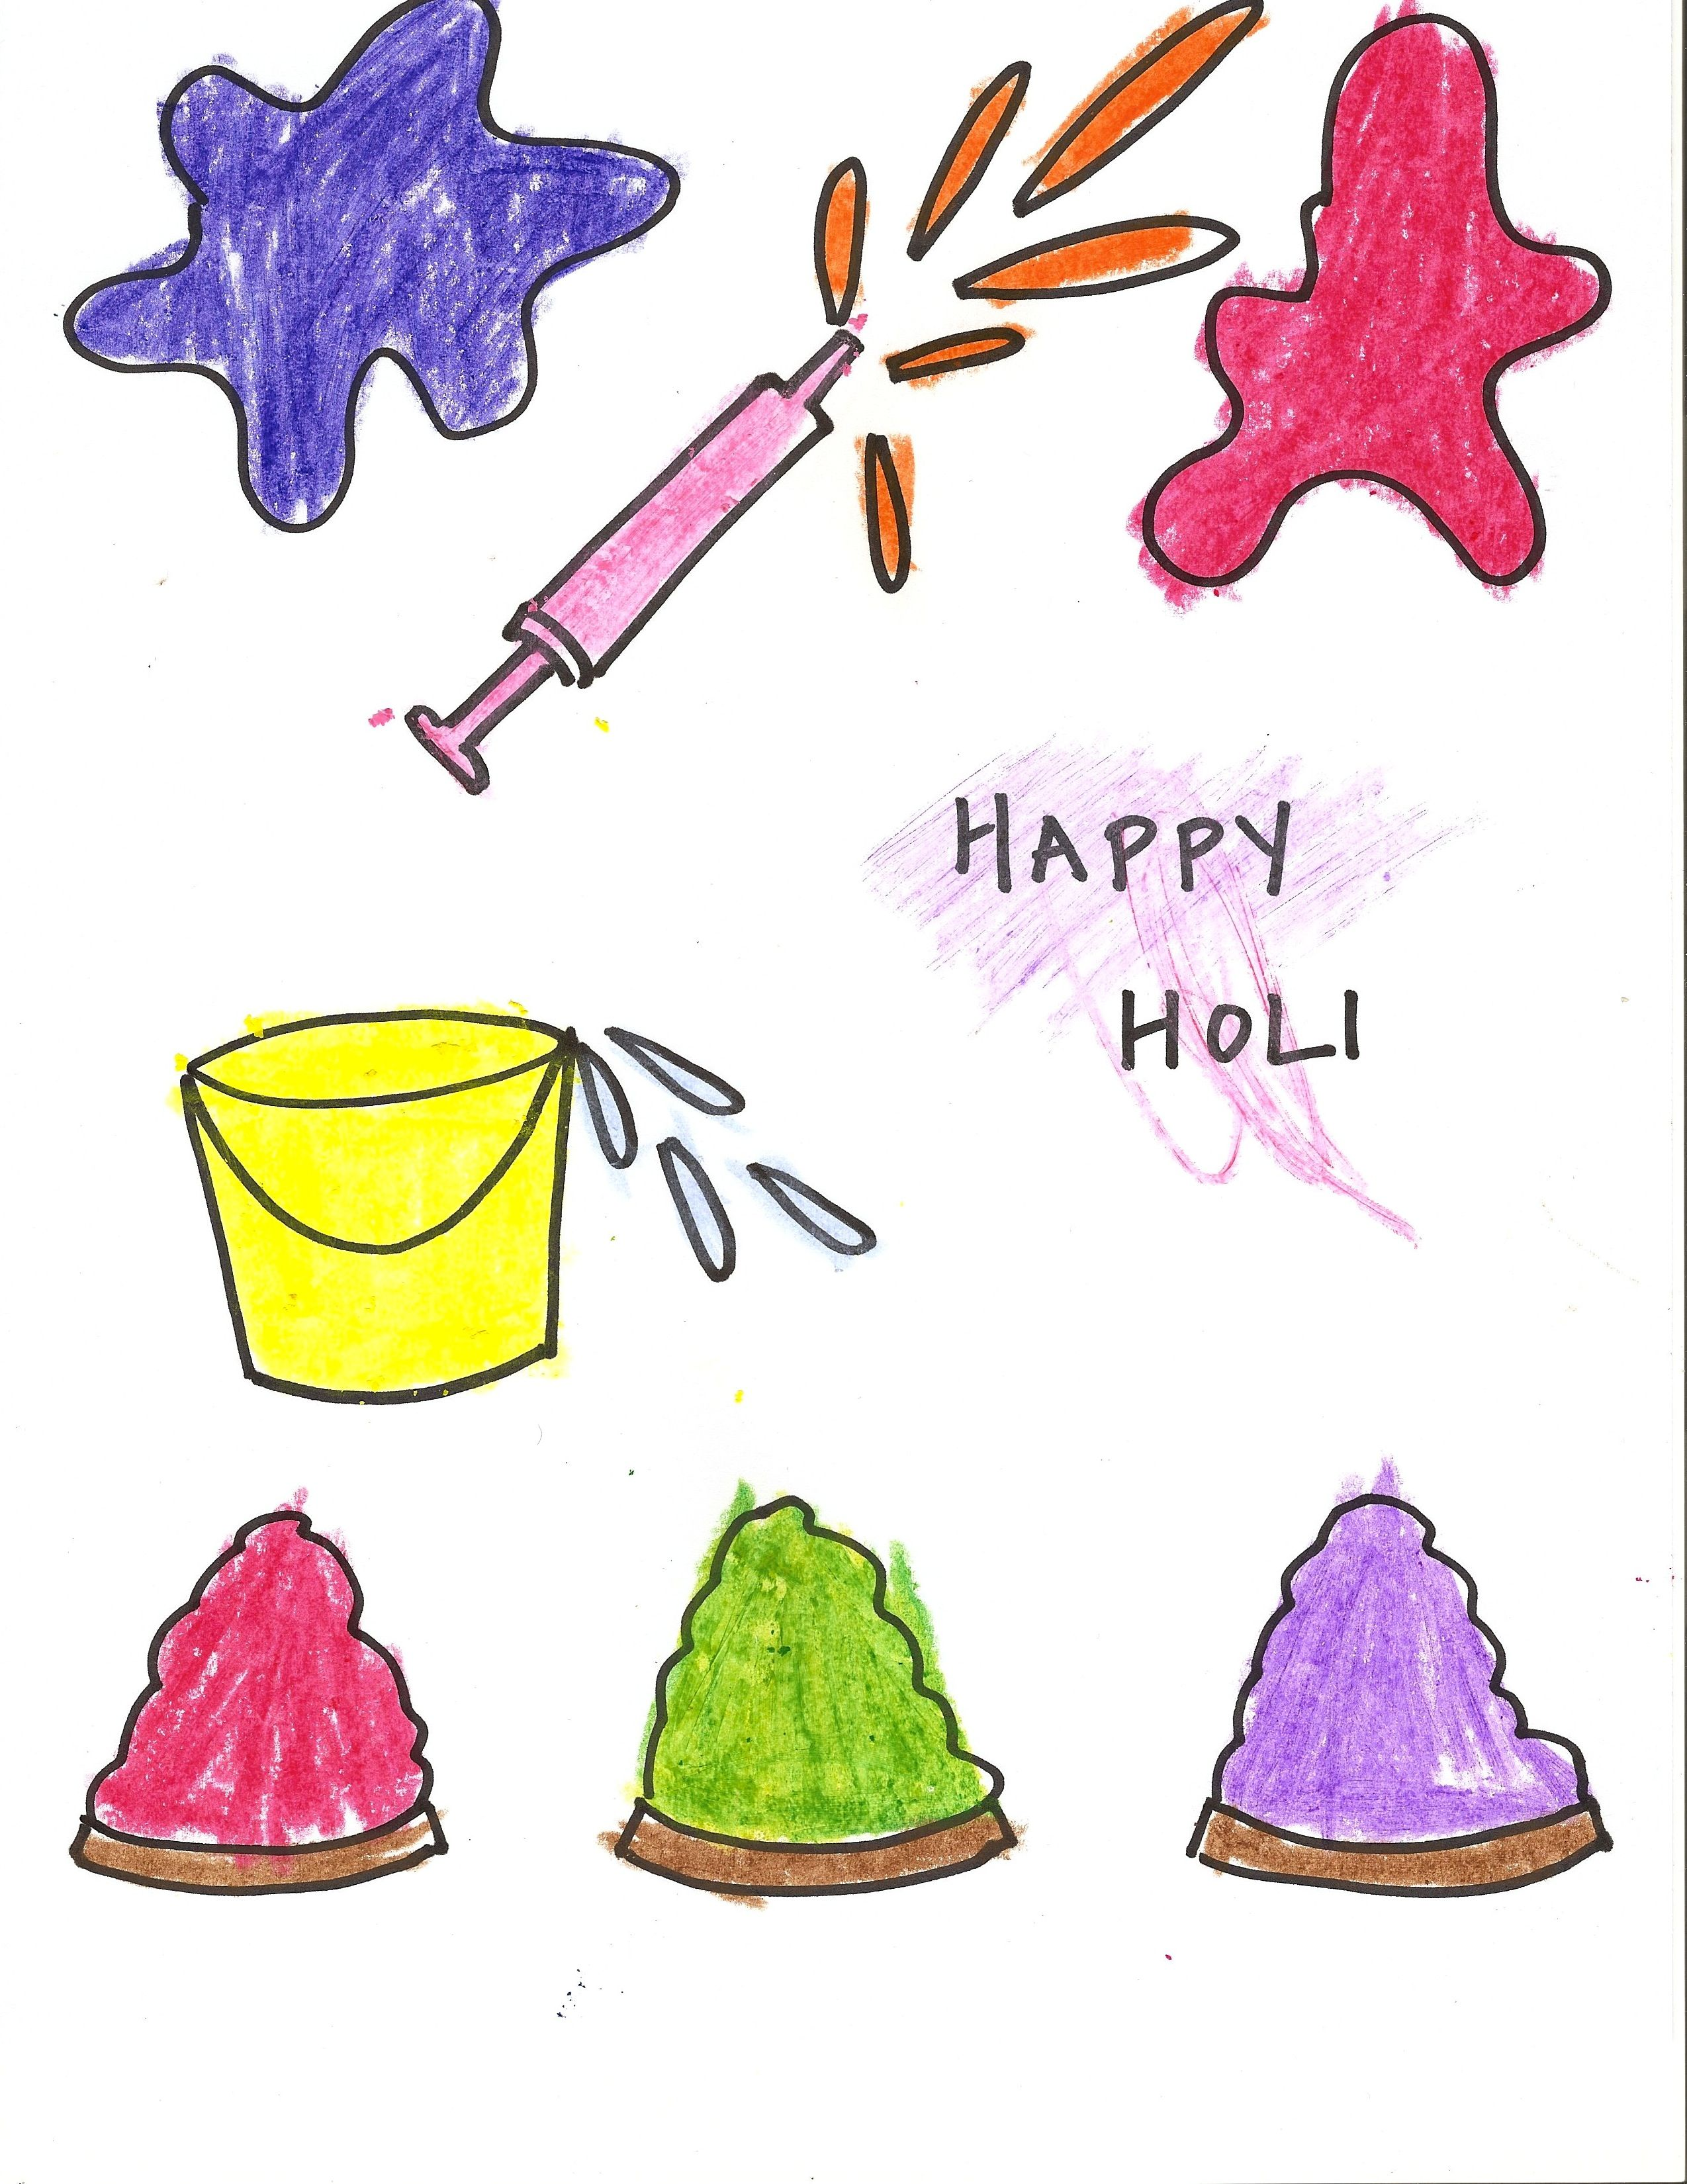 holi coloring page download - Drawing For Children Free Download